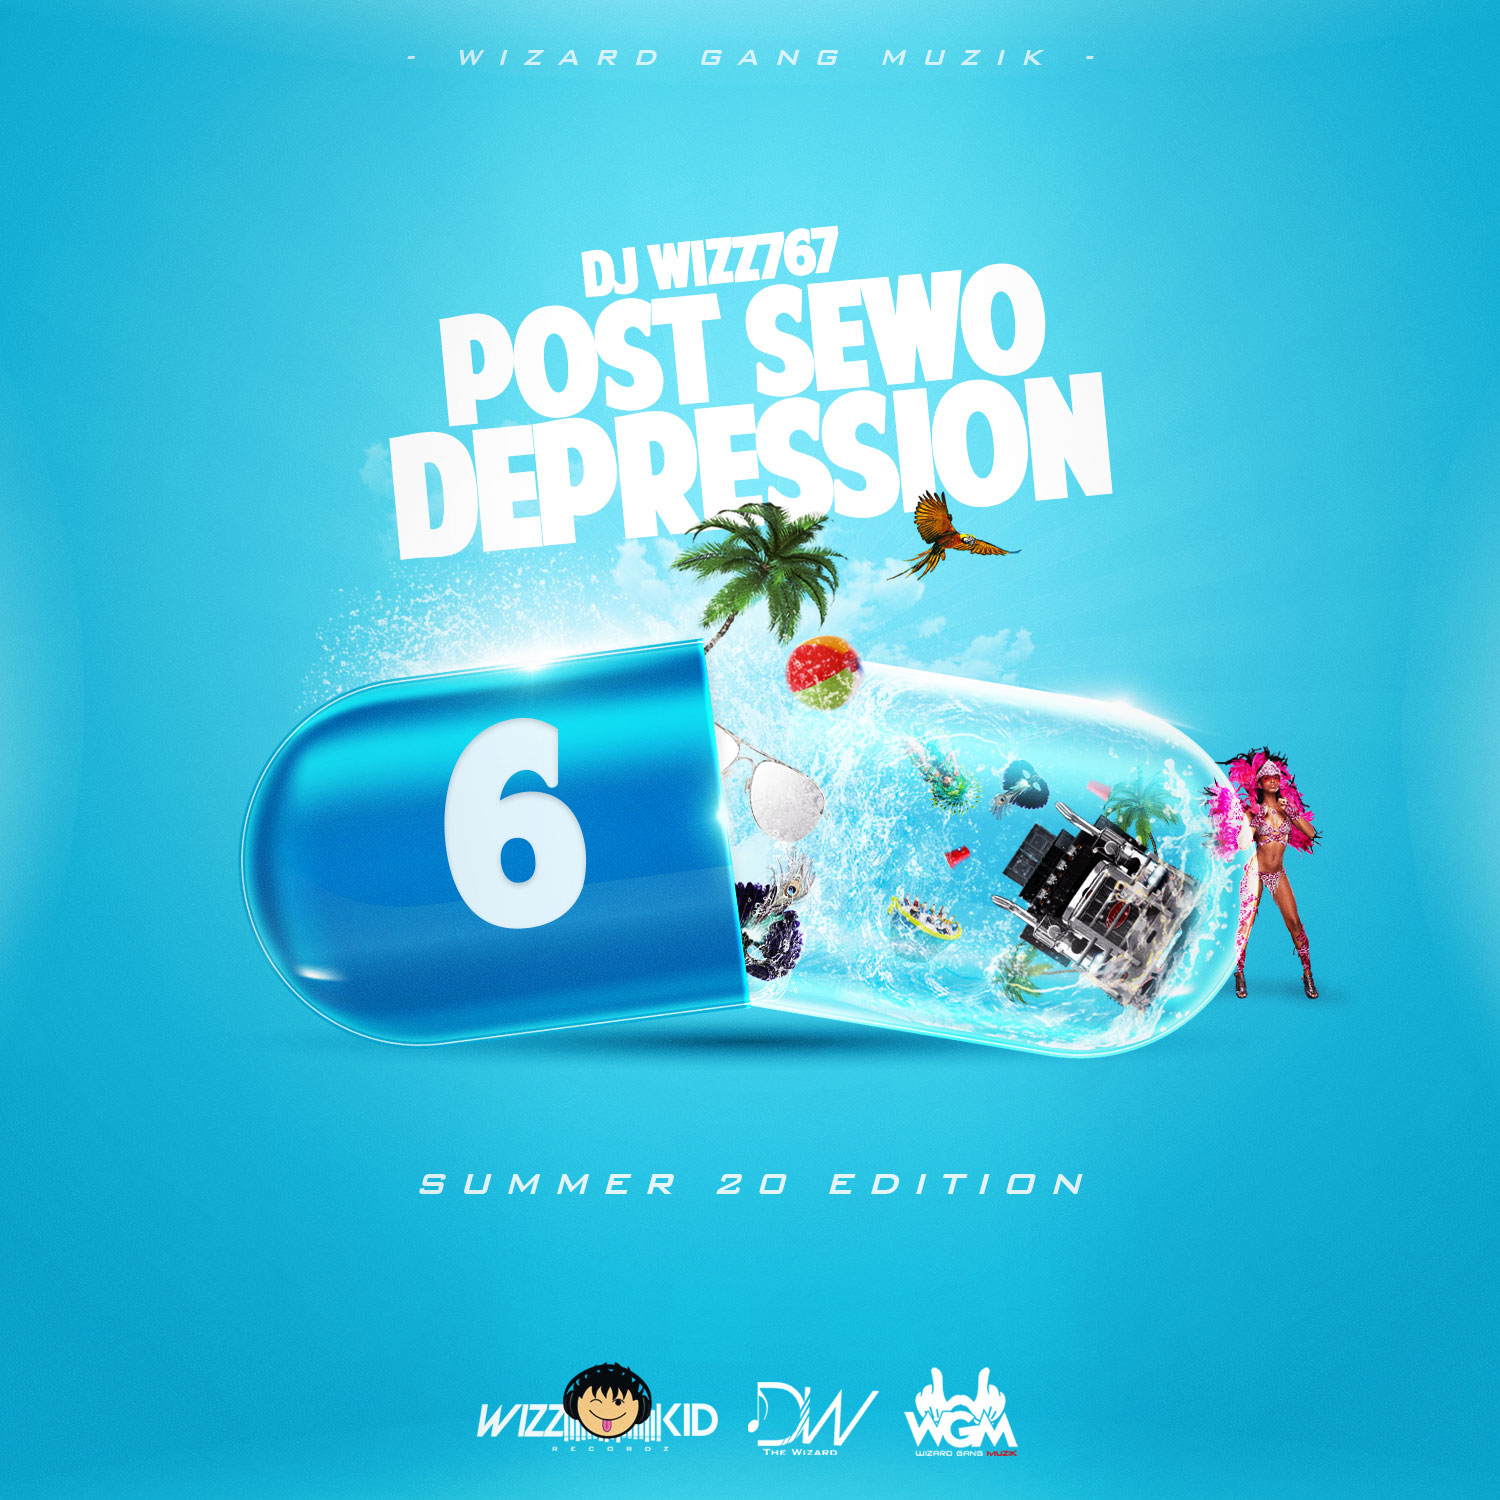 Dj Wizz767 – Post Sewo Depression 6 (Summer 20 Edition)